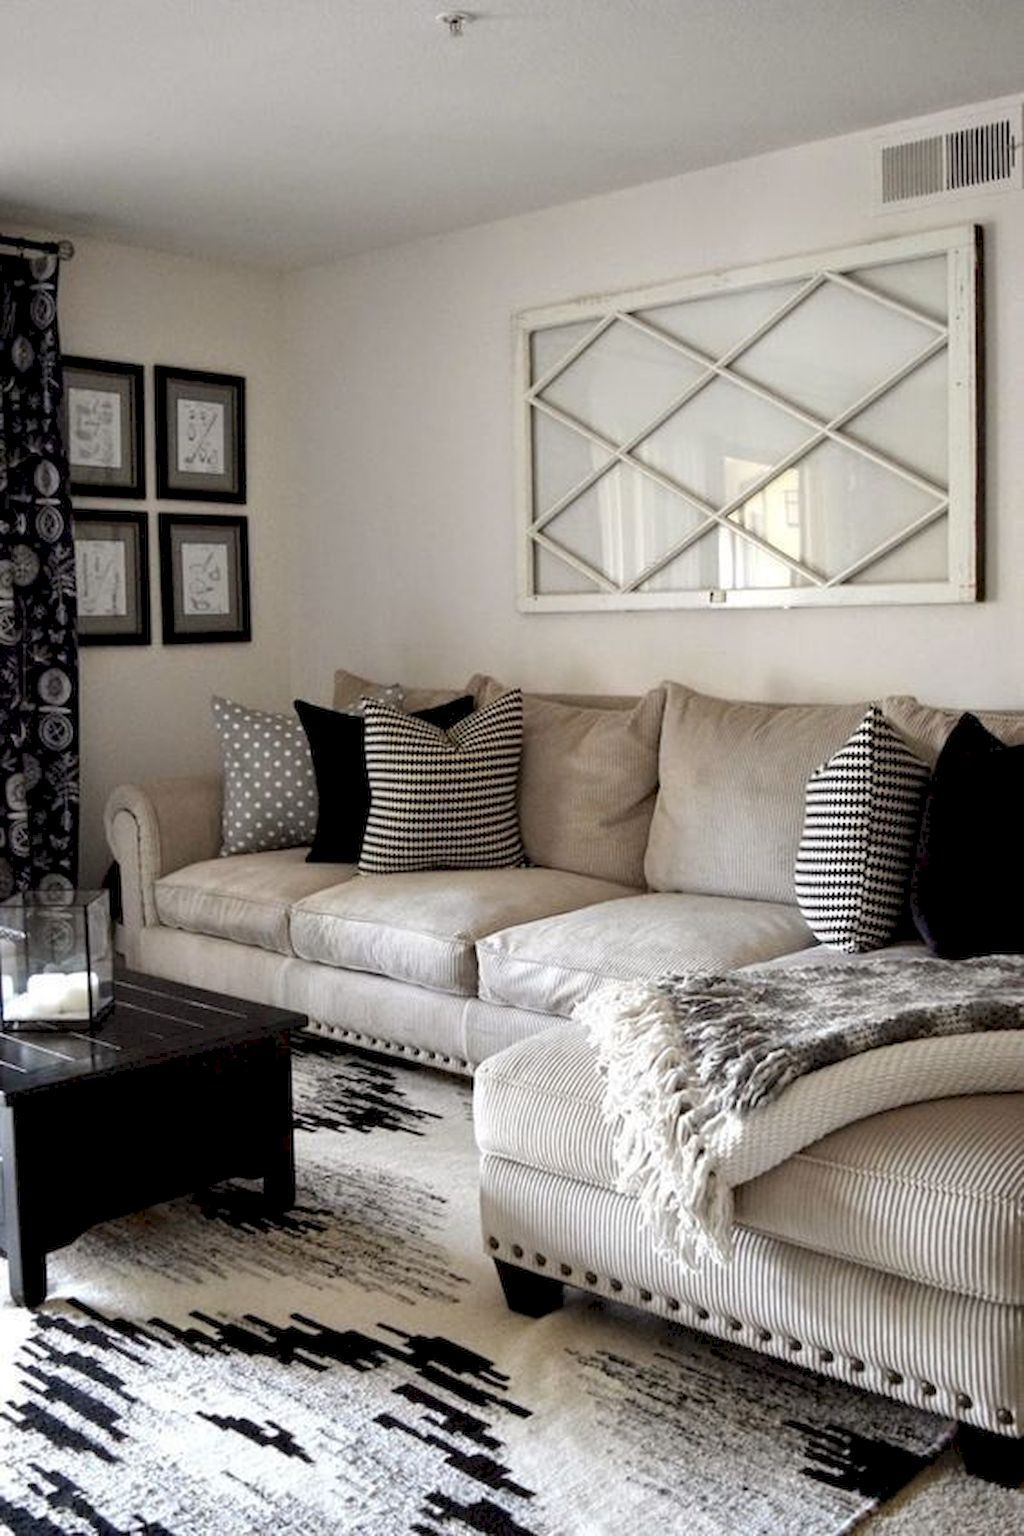 36 small living room ideas on a budget | small living rooms, small